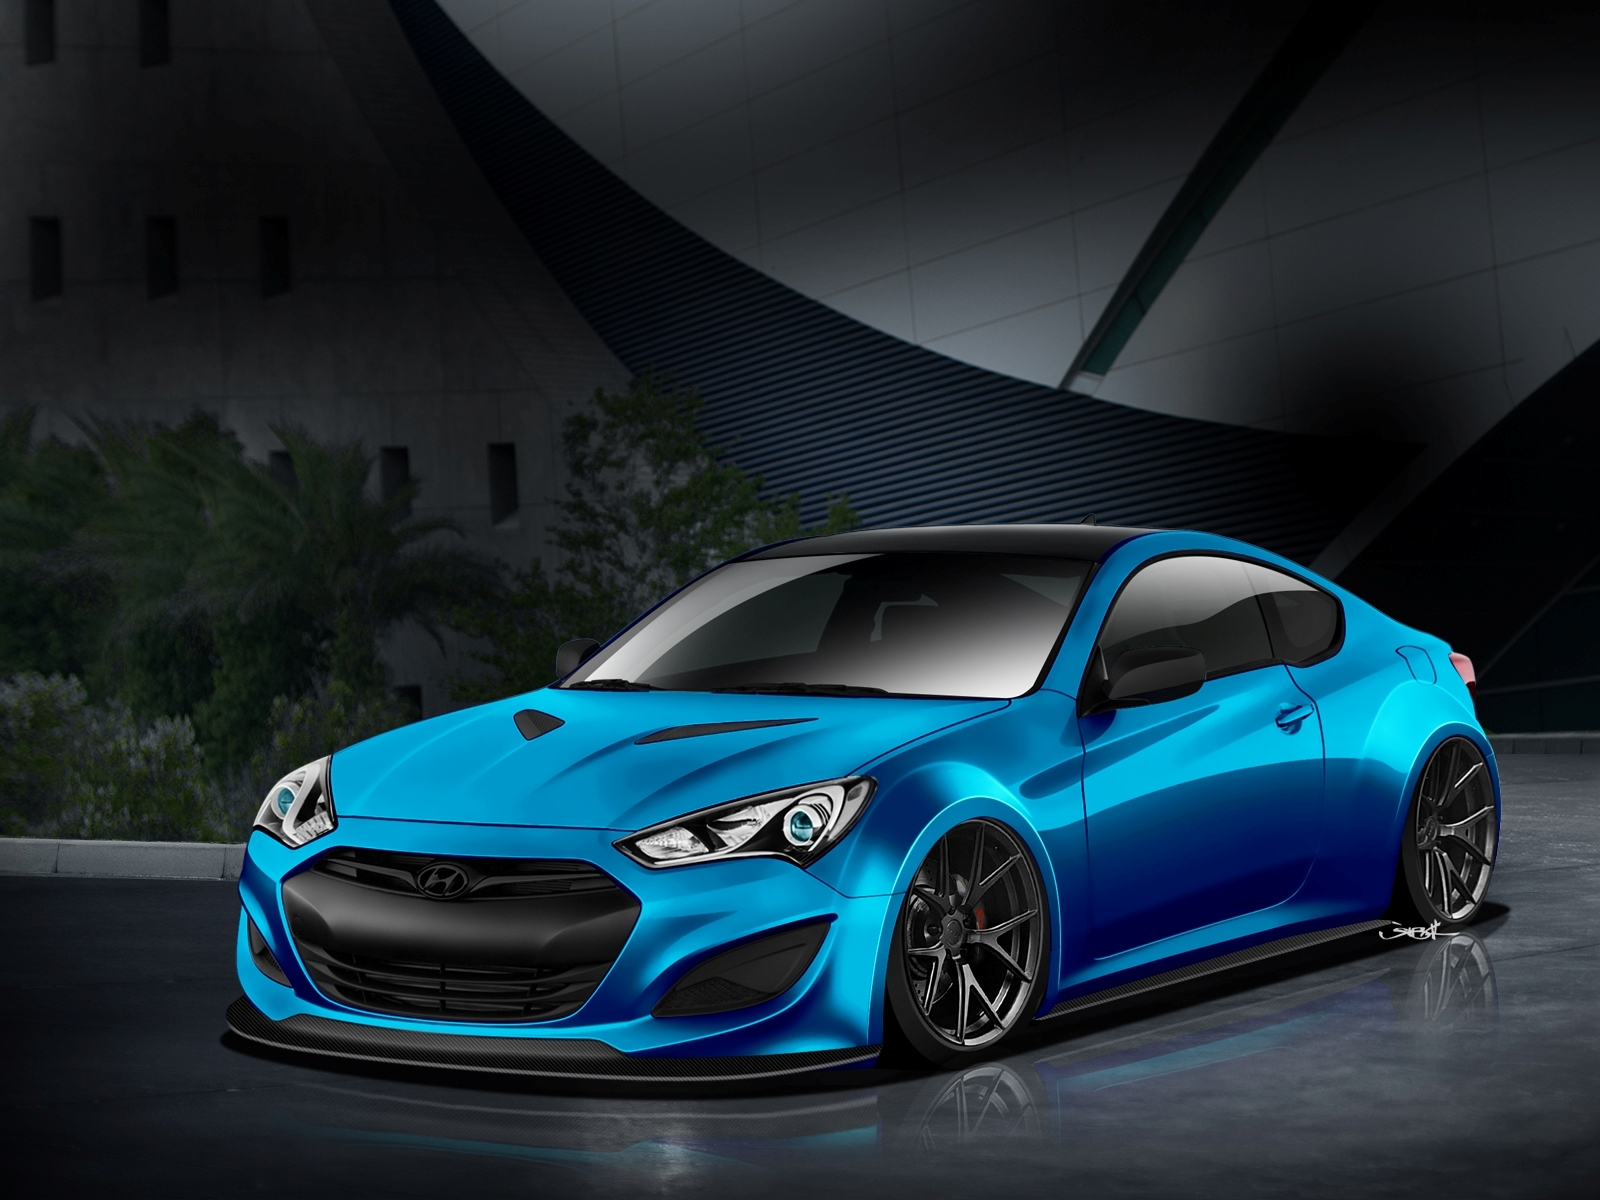 Atlantic blue hyundai genesis coupe will make waves at sema - Hyundai genesis coupe motor ...